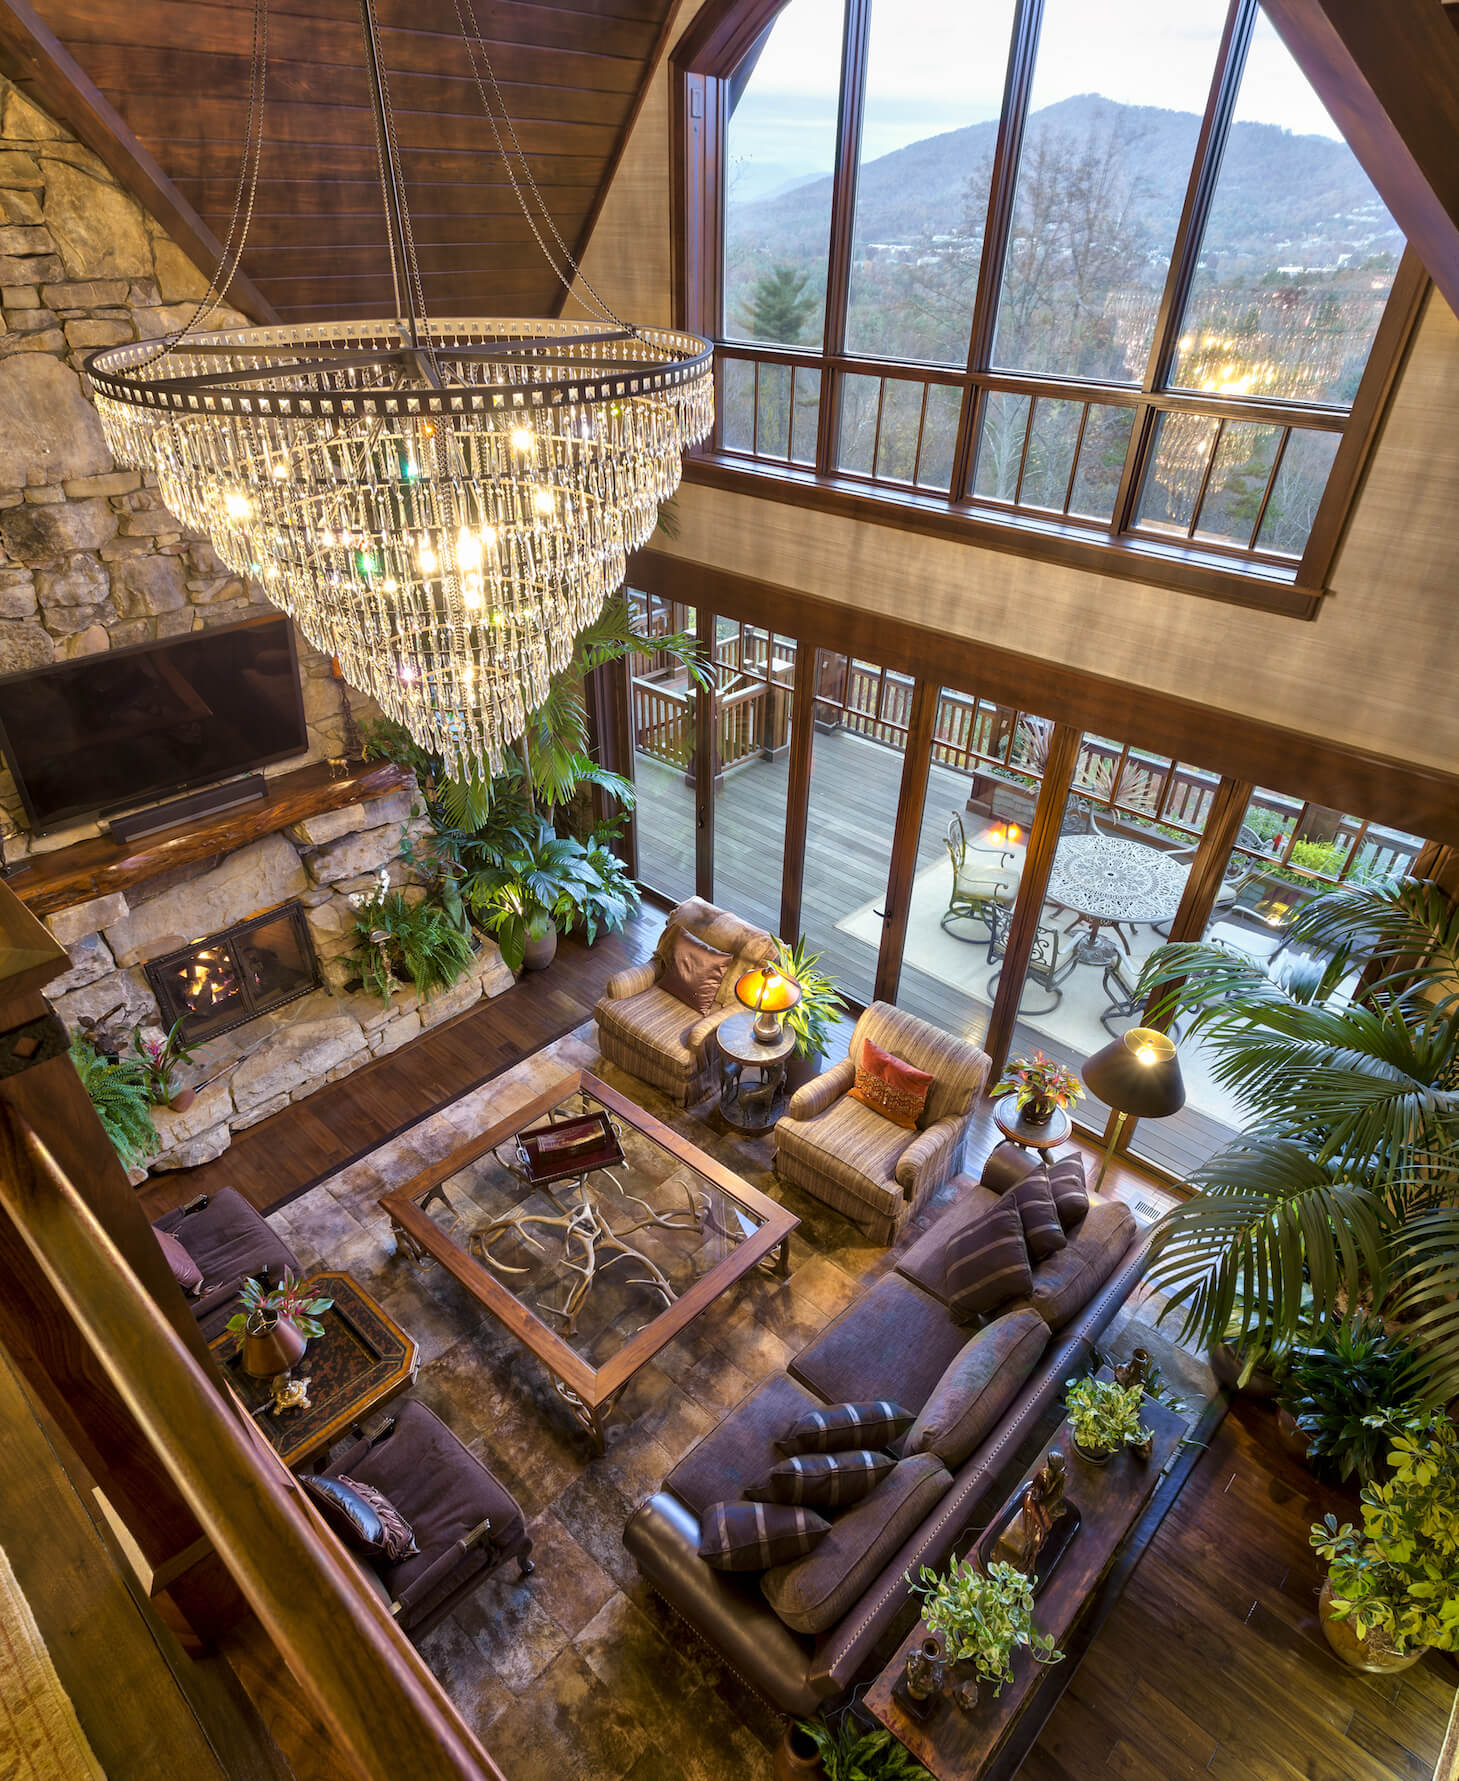 Moving indoors, we see the grand living room, packed with detailed furniture over rich hardwood flooring. The space is overlooked by a massive stone fireplace and two stories of windows, with retractible glass panels at ground level for balcony access.